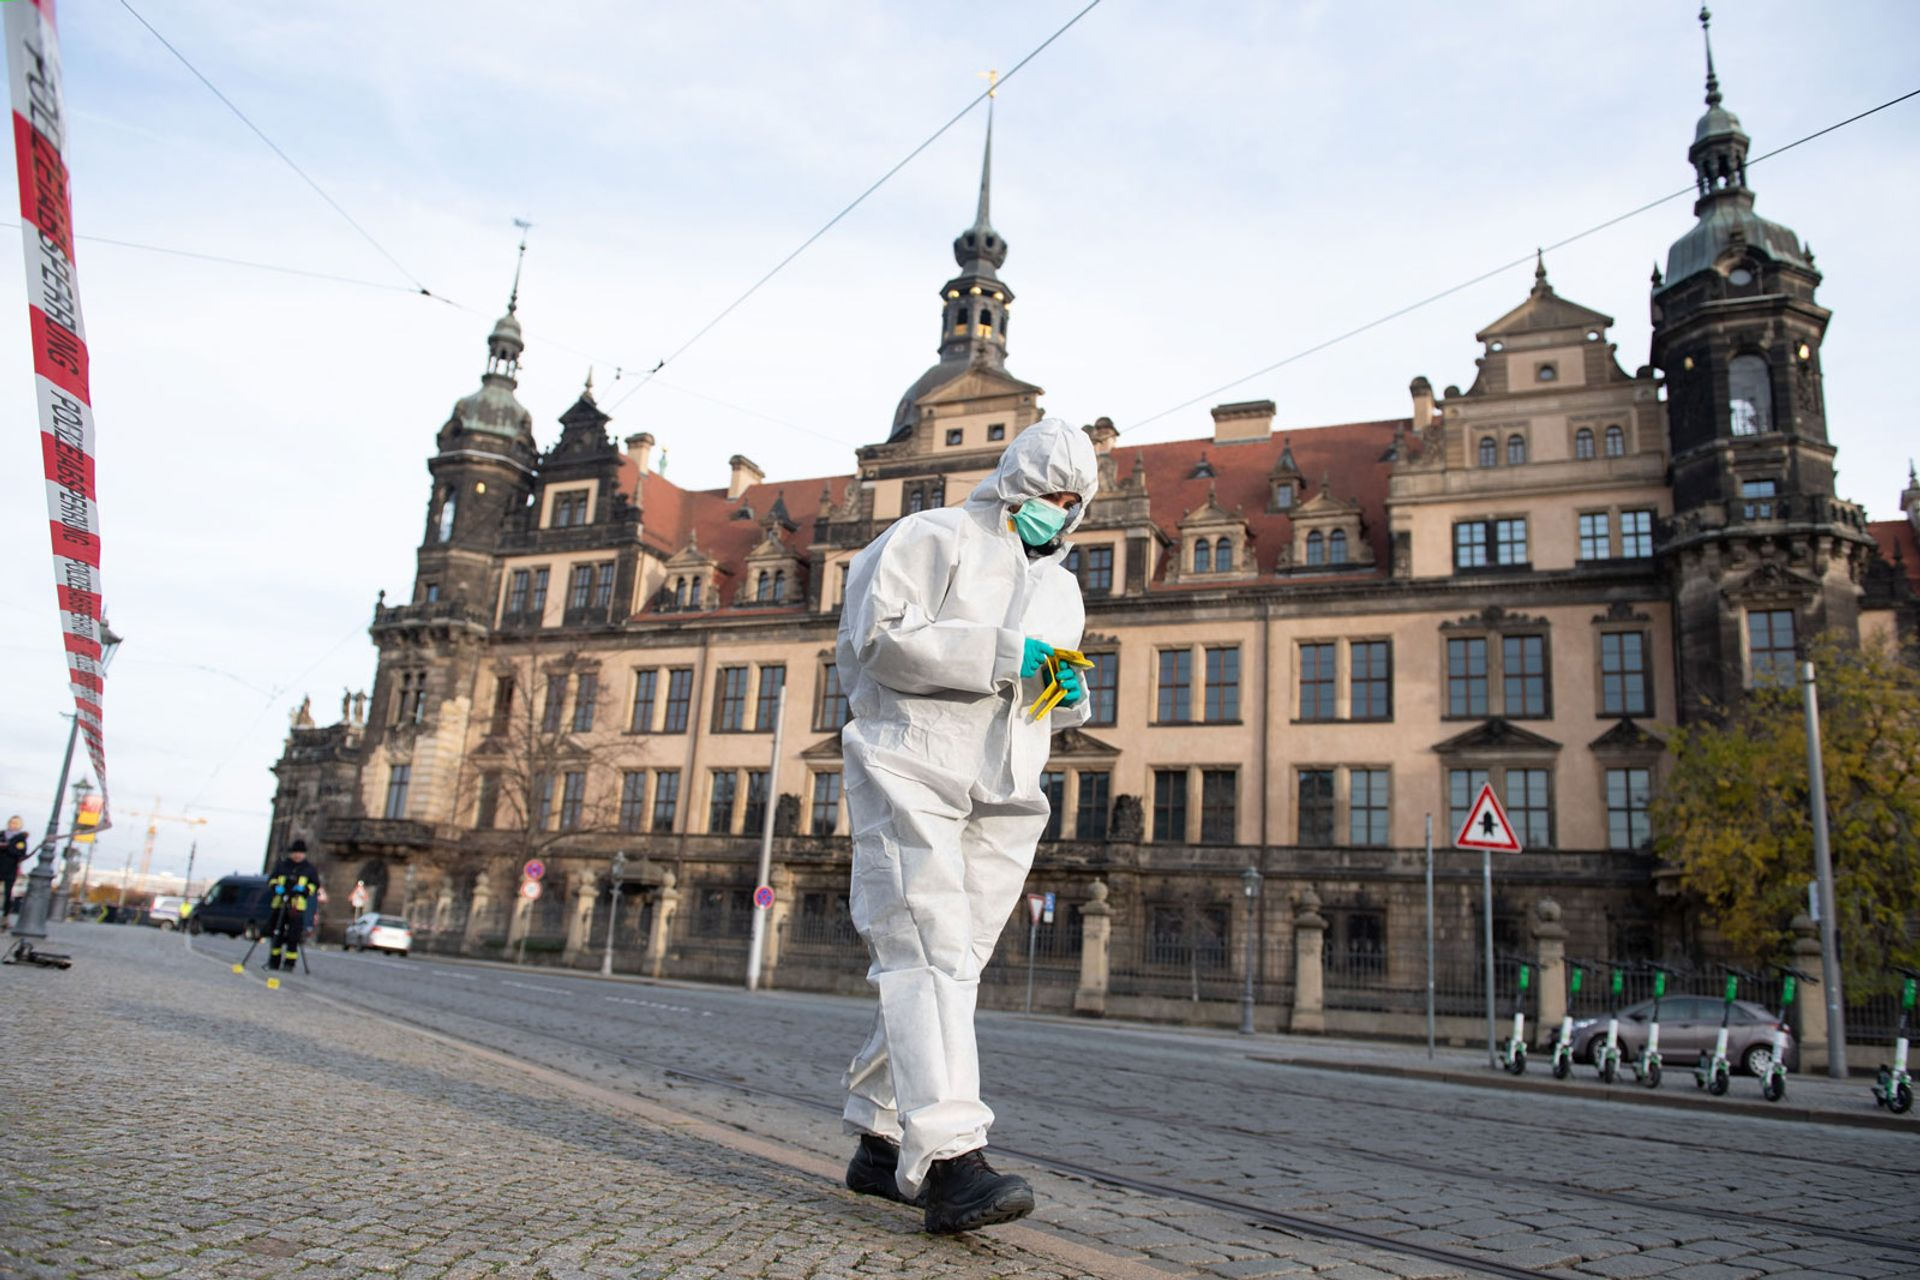 A forensic expert searches the area around the Royal Palace that houses the Green Vault in Dresden © Photo Sebastian Kahnert/dpa/AFP/Getty